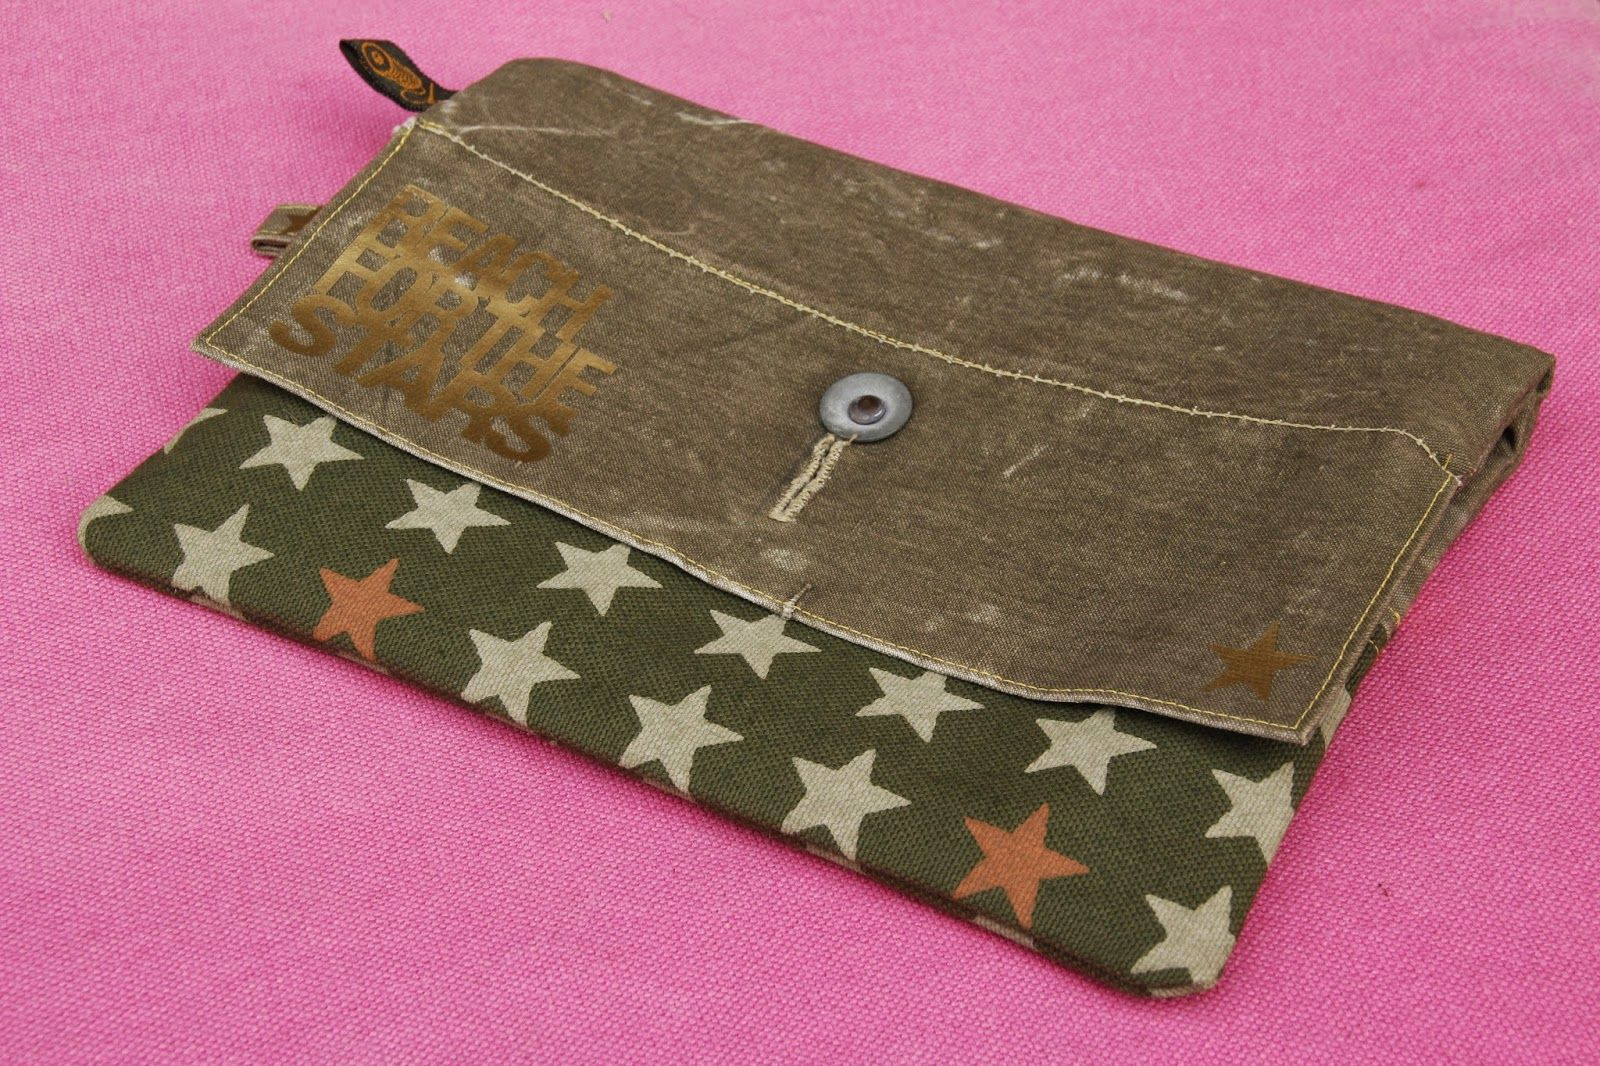 Clutch Z T Aus Alter Armee Plane Clutch Partly Made From Old